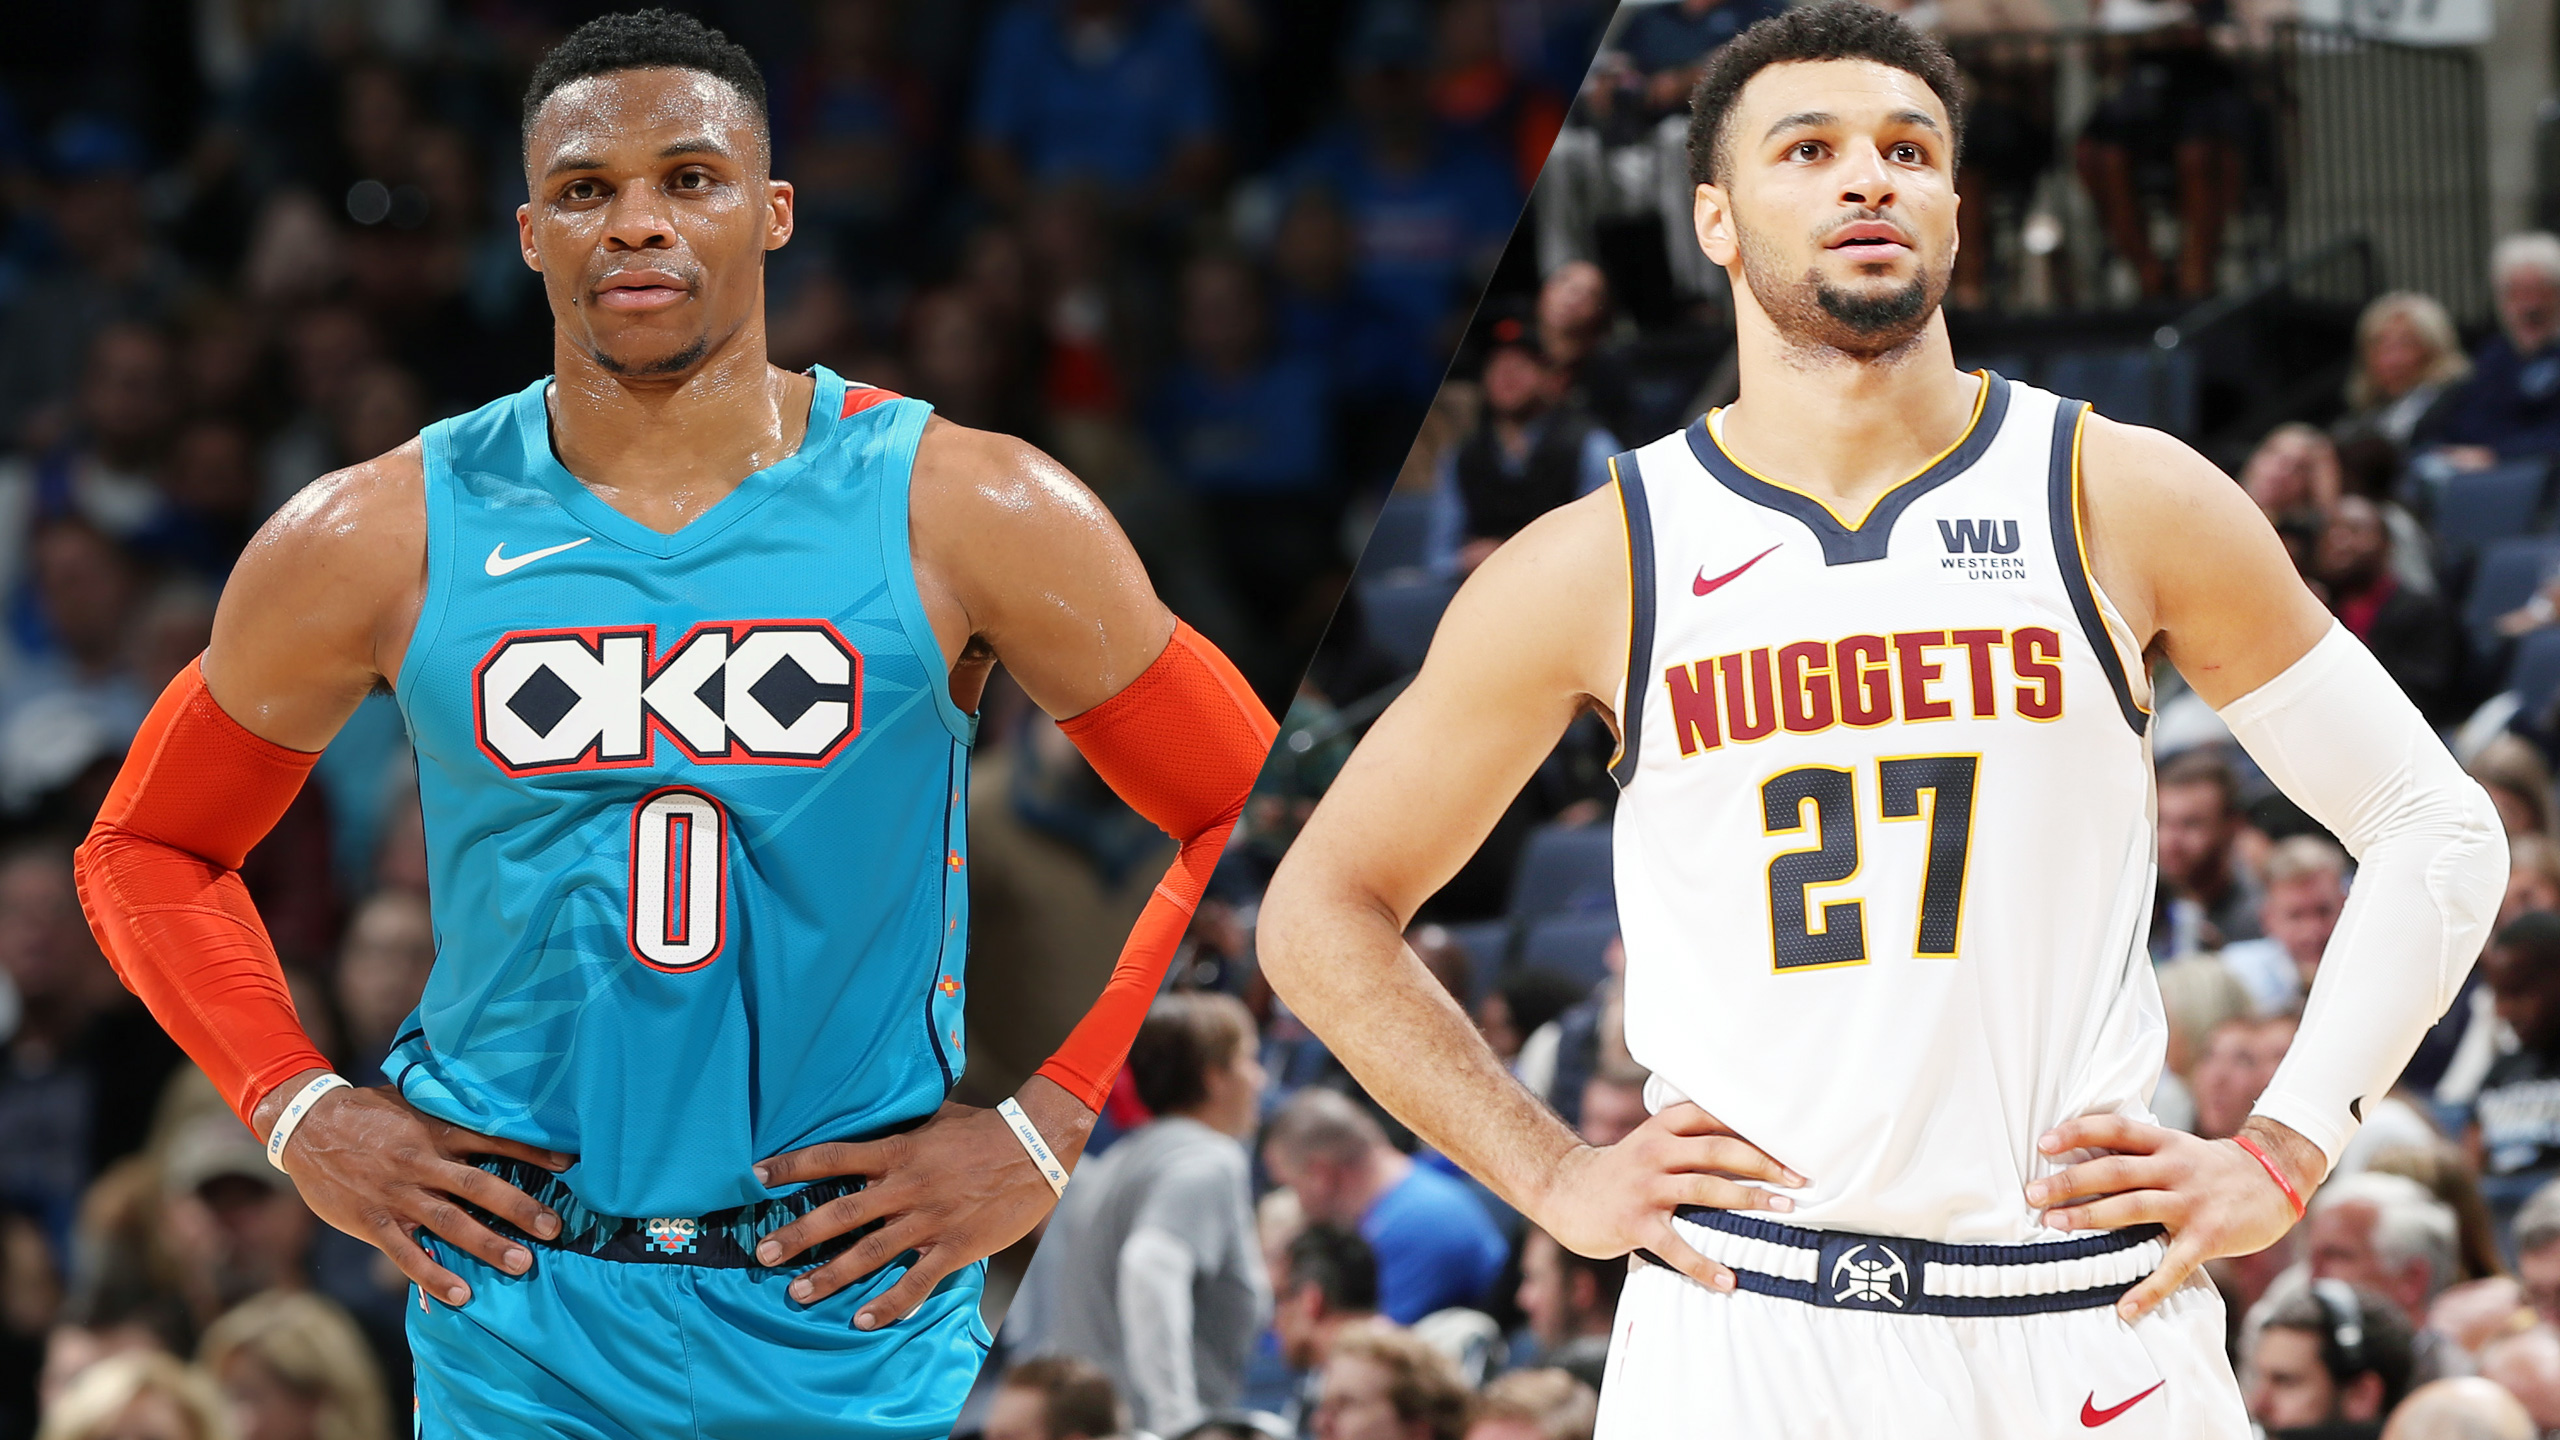 Oklahoma City Thunder vs. Denver Nuggets